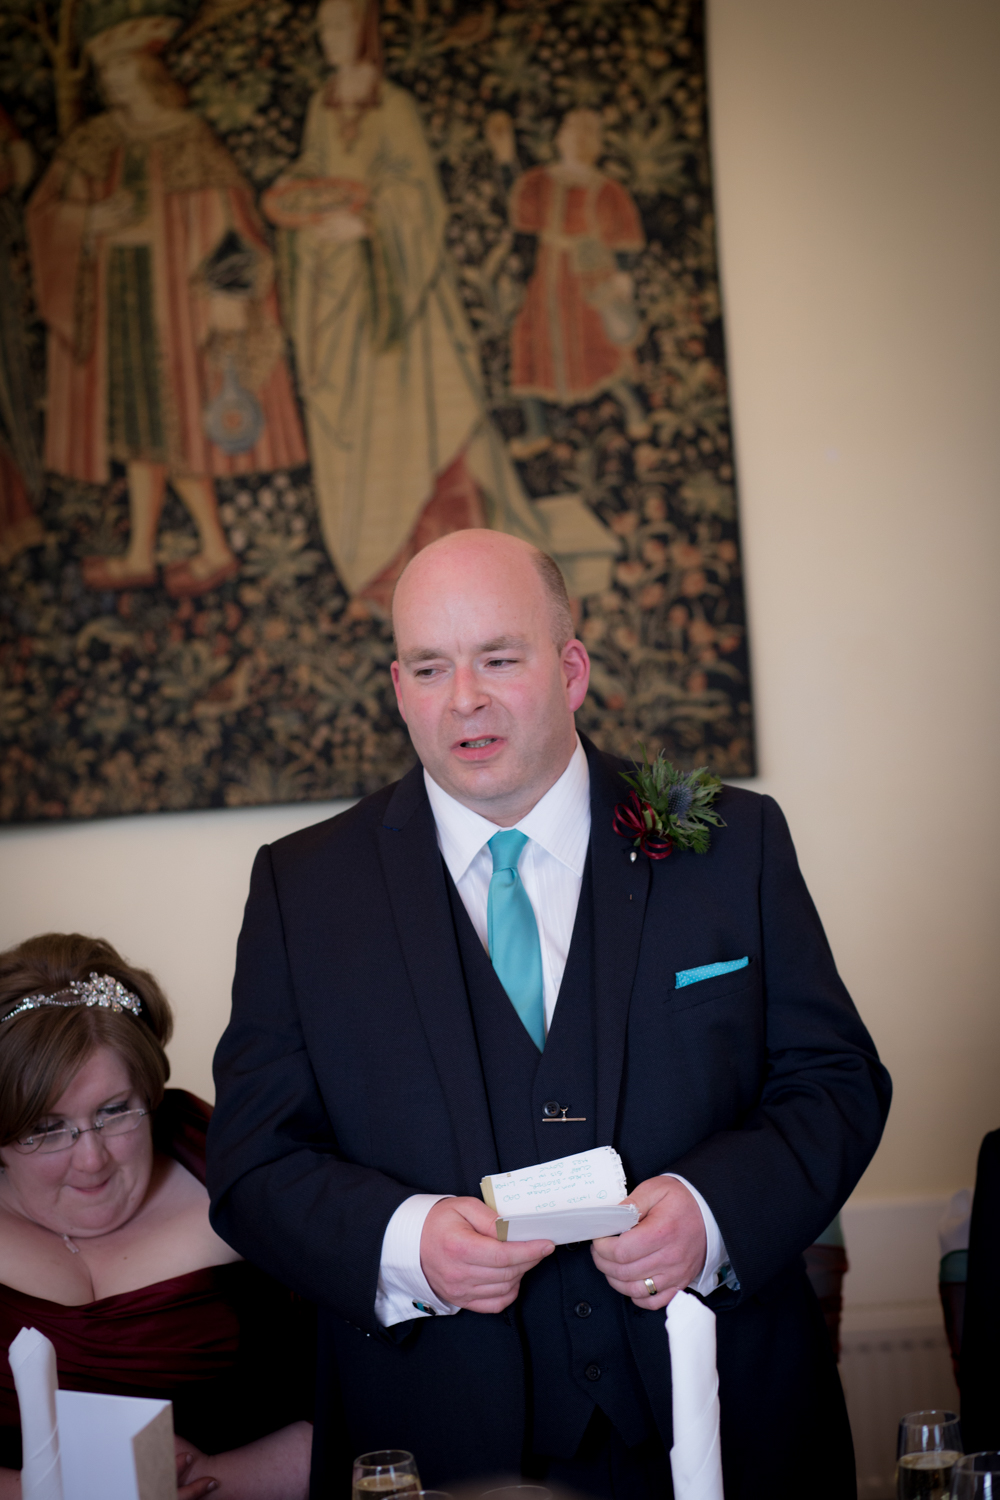 Clare and Charles wedding day blog-79.jpg